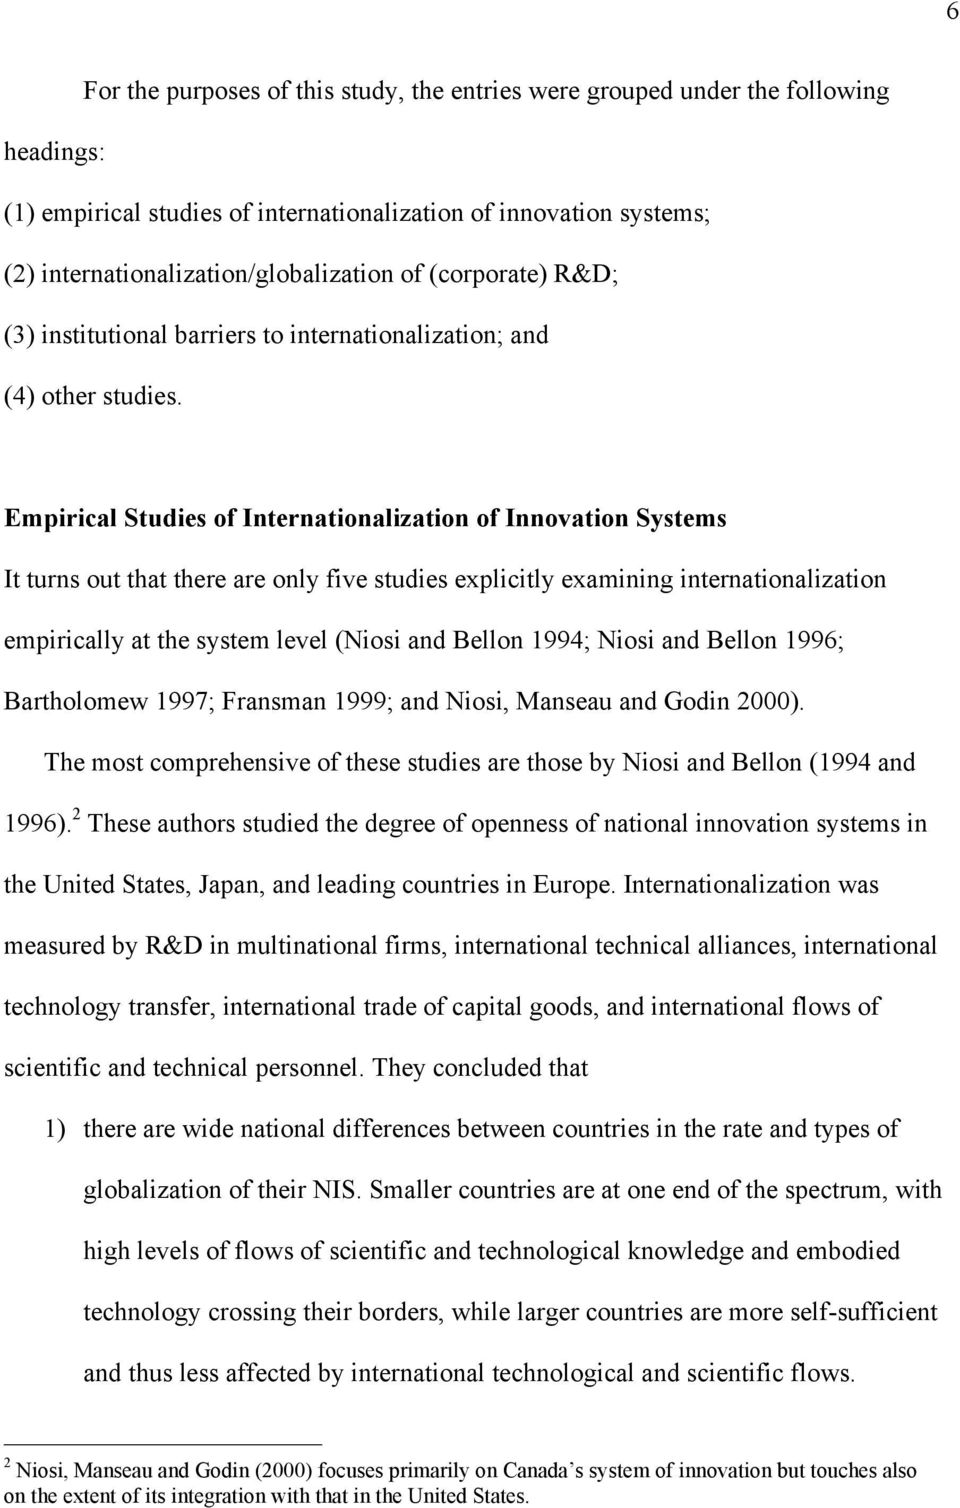 Empirical Studies of Internationalization of Innovation Systems It turns out that there are only five studies explicitly examining internationalization empirically at the system level (Niosi and